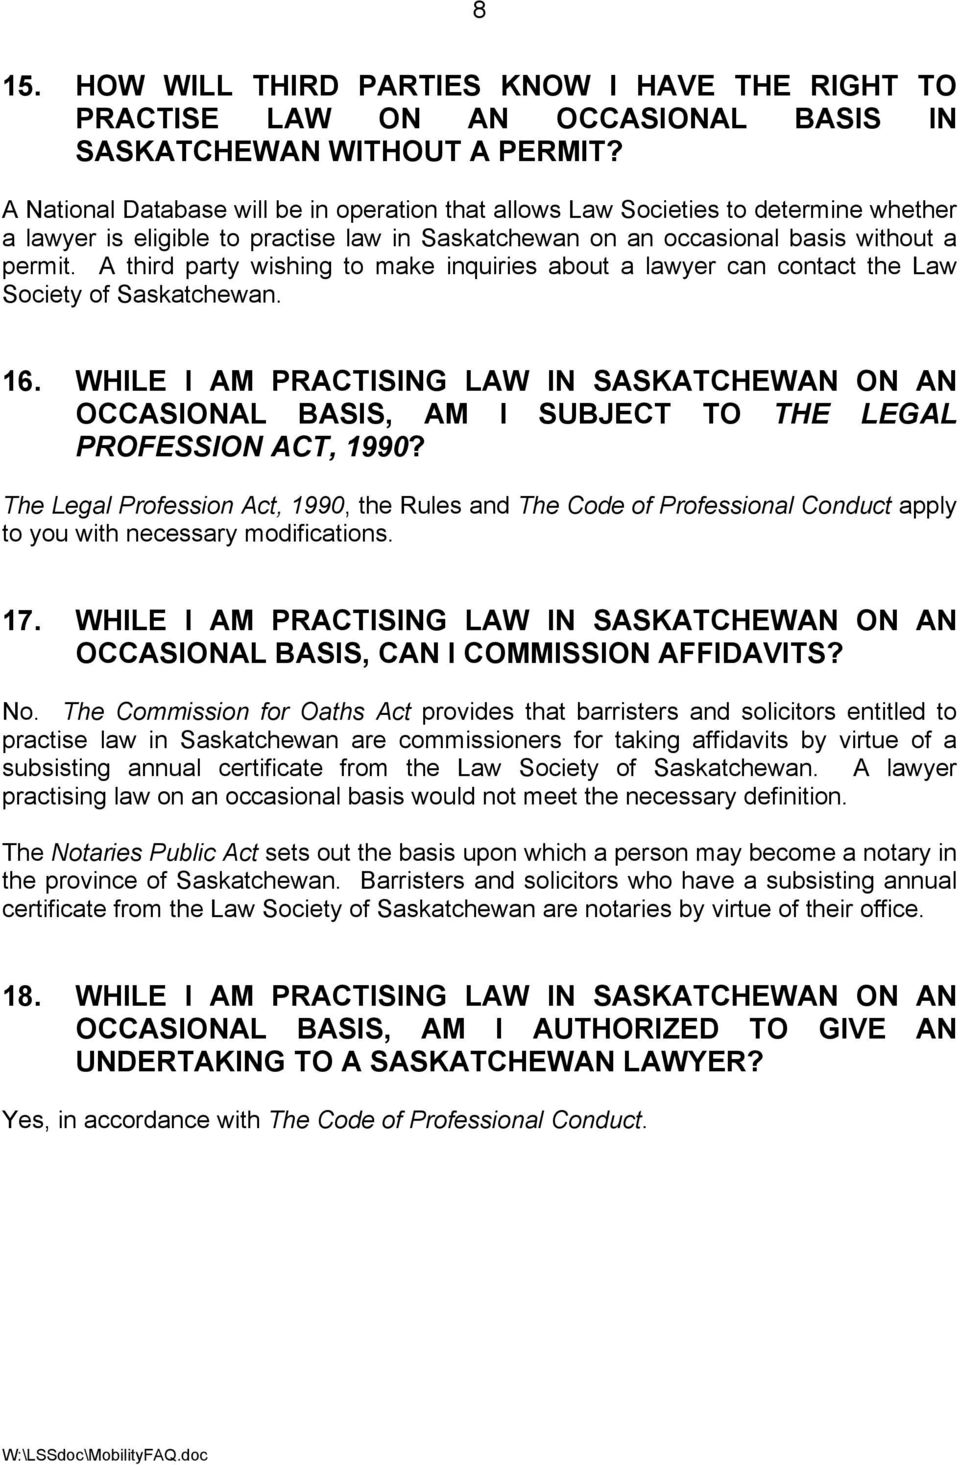 A third party wishing to make inquiries about a lawyer can contact the Law Society of Saskatchewan. 16.